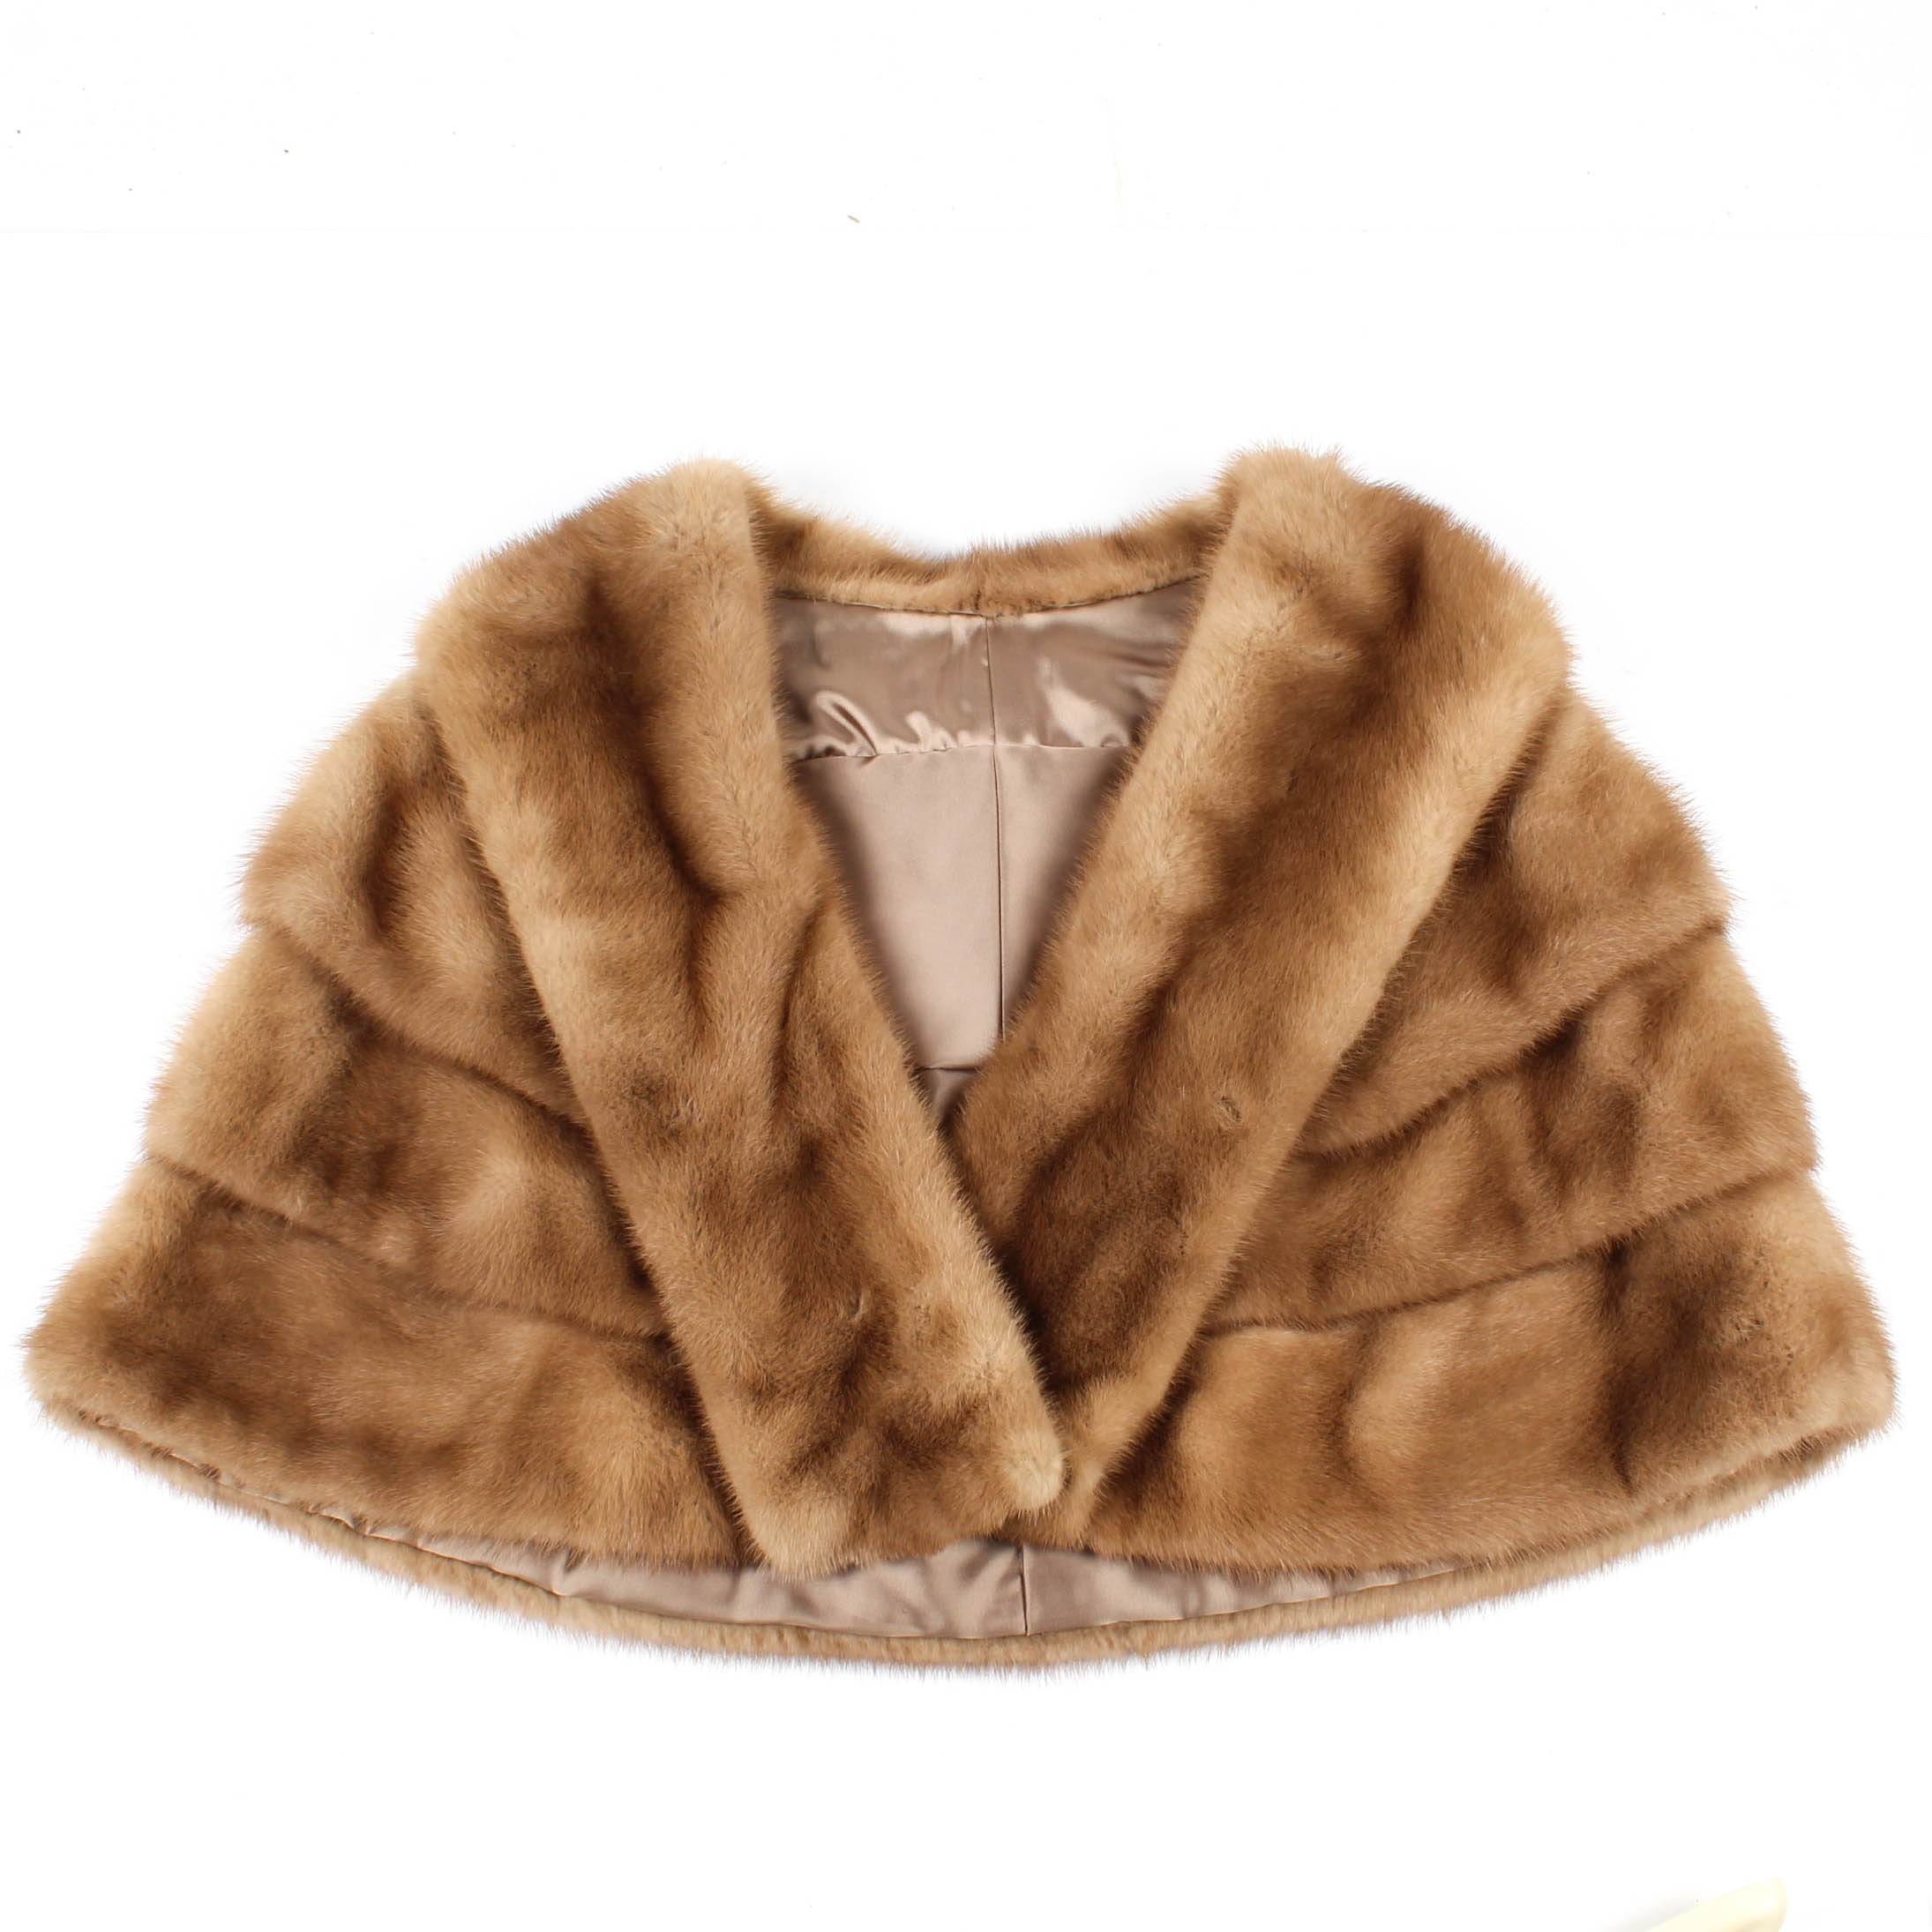 Vintage Tiered Mink Fur Stole with Collar